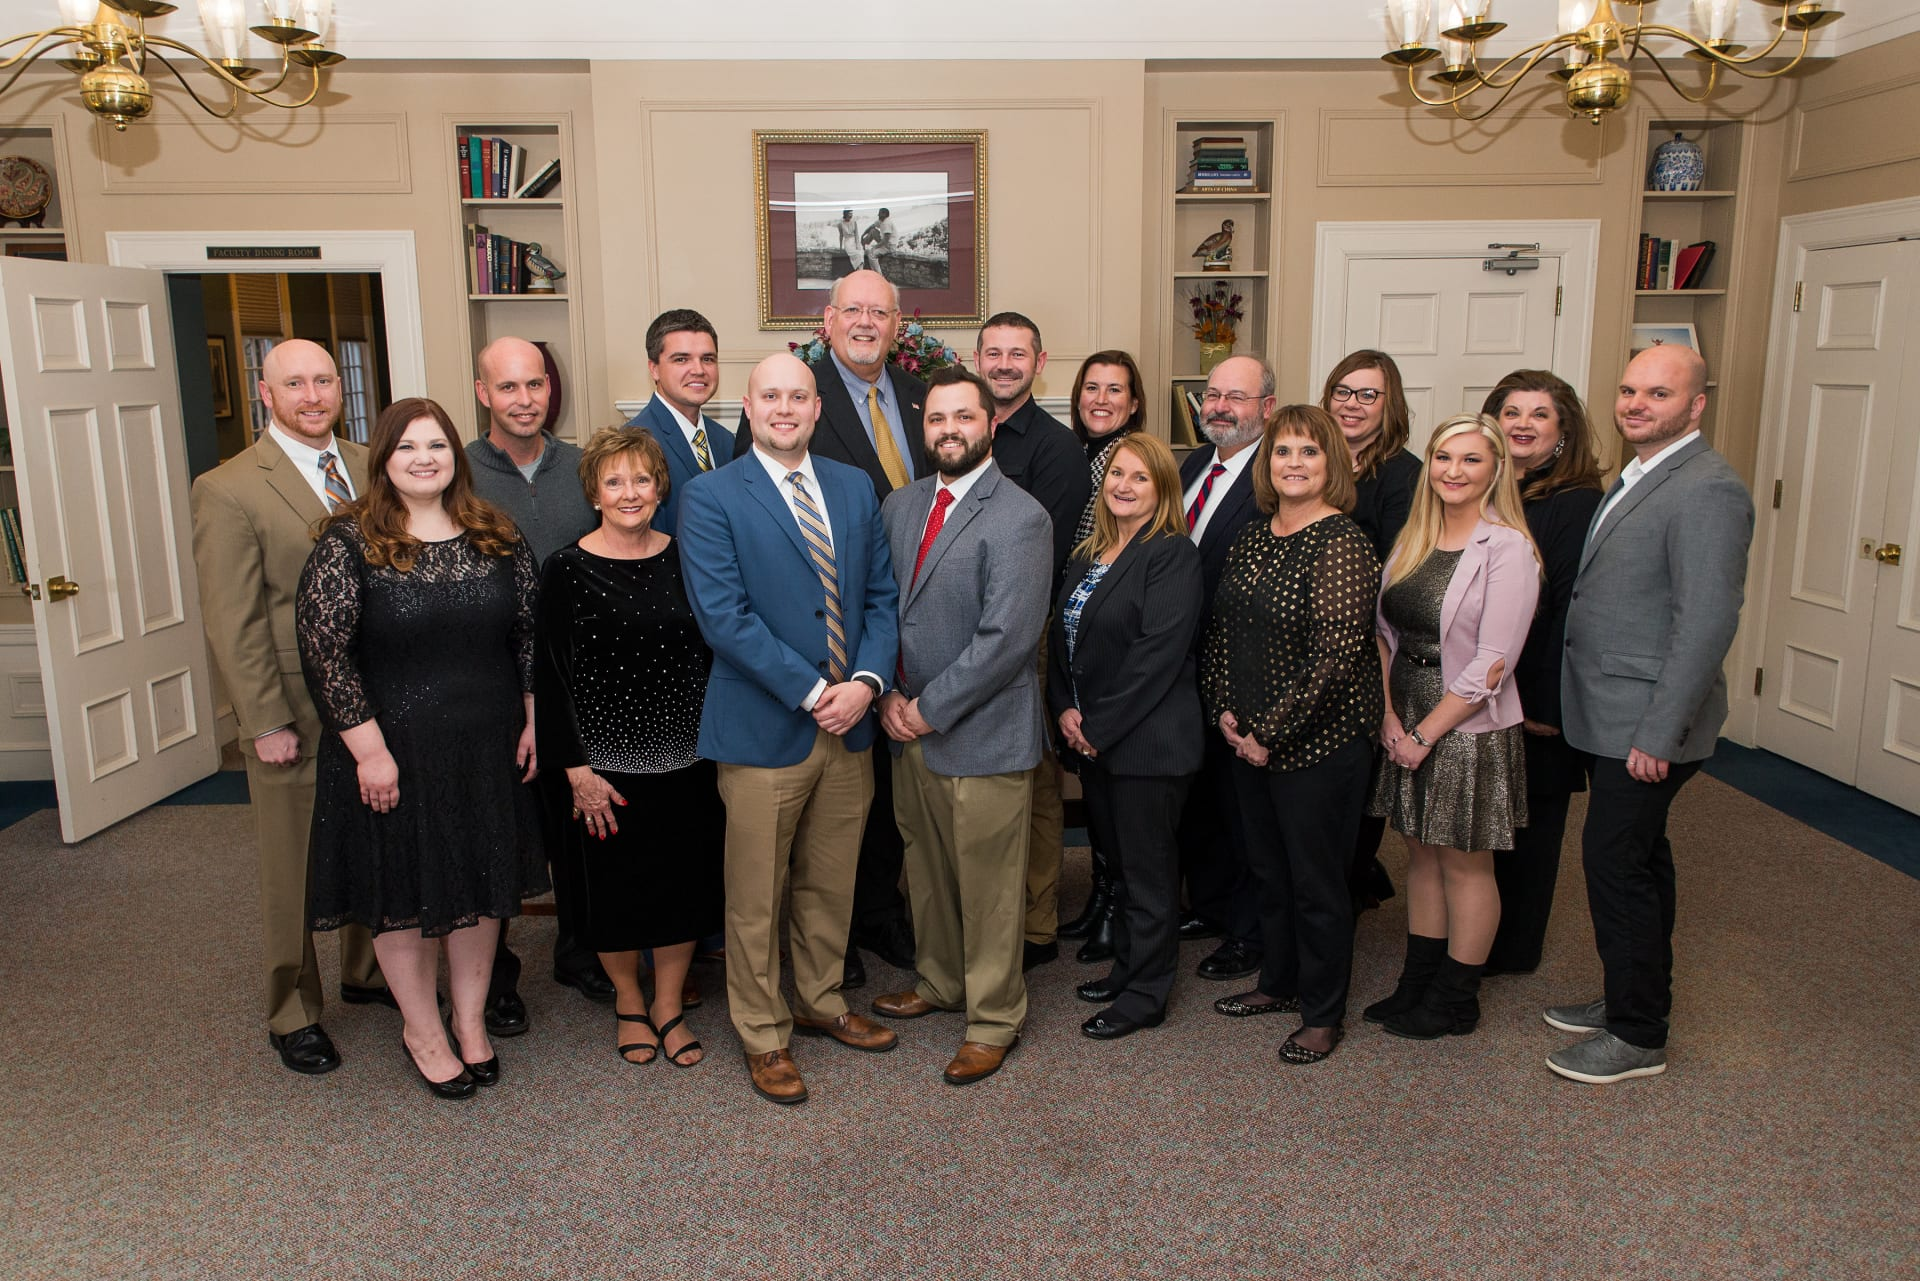 Madison Indiana, Madison Area Chamber of Commerce, 2018 Board of Directors